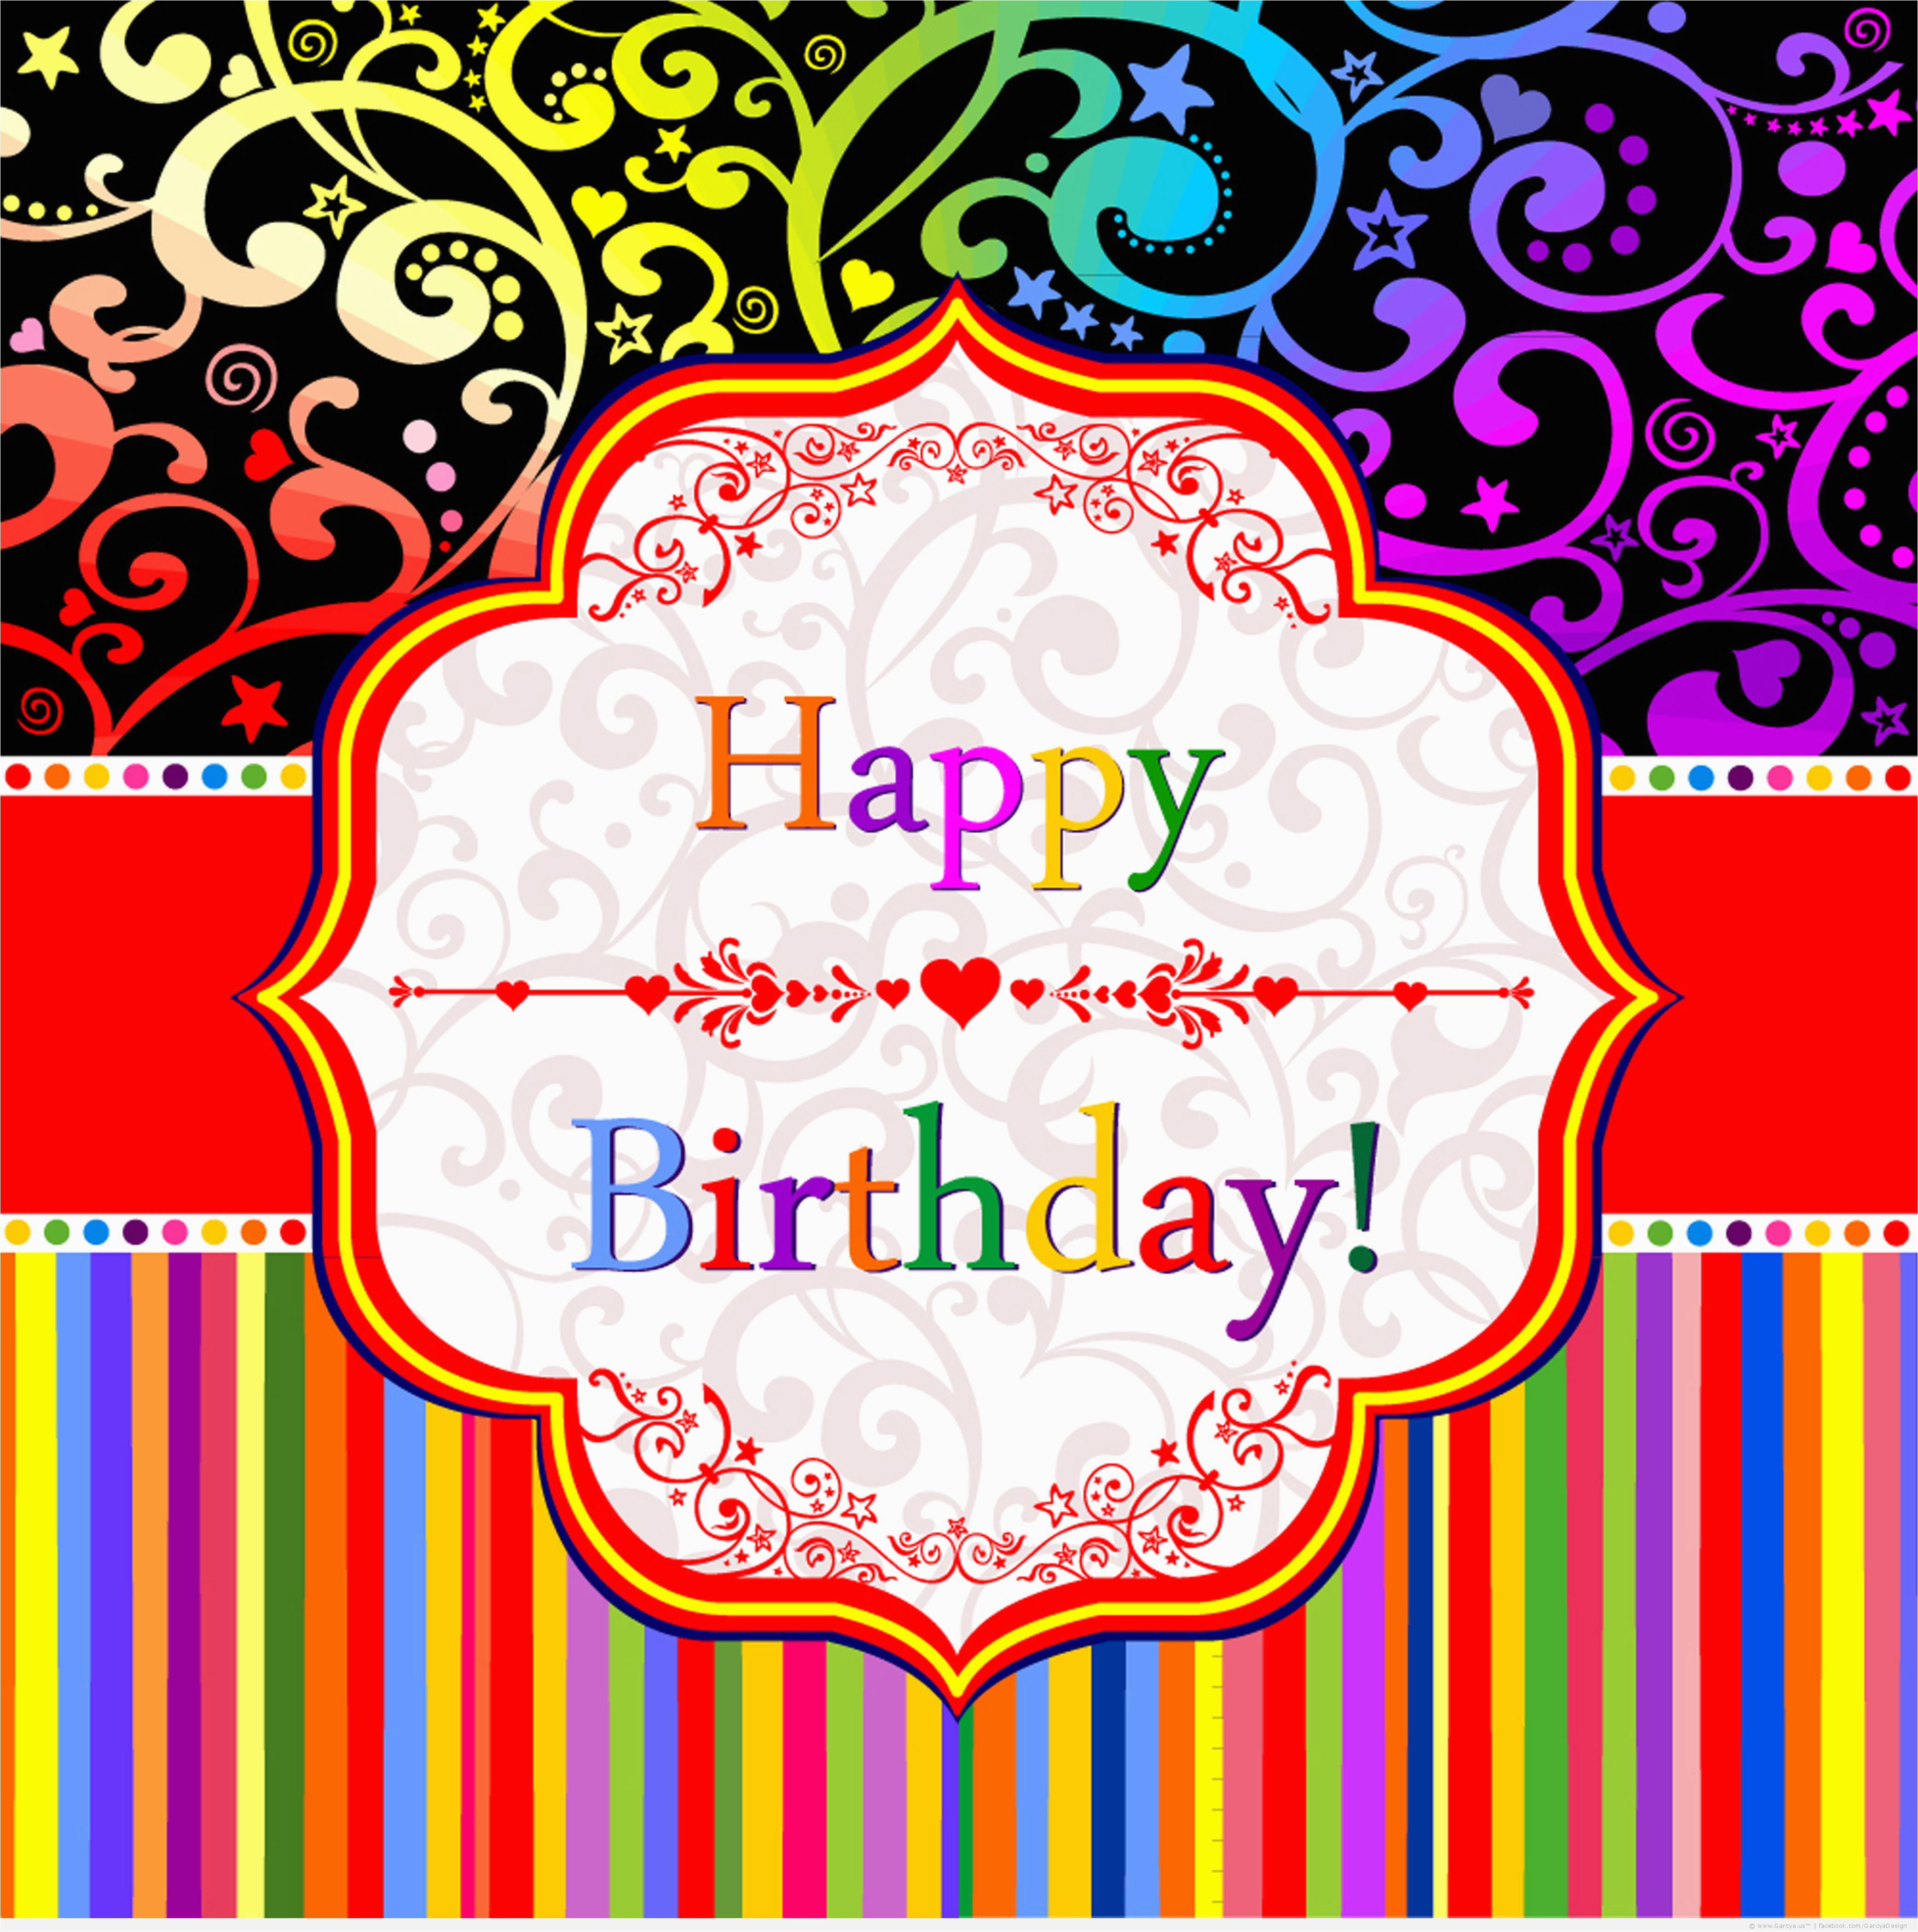 Send Happy Birthday Cards Online Free Beautiful And Unique Birthday